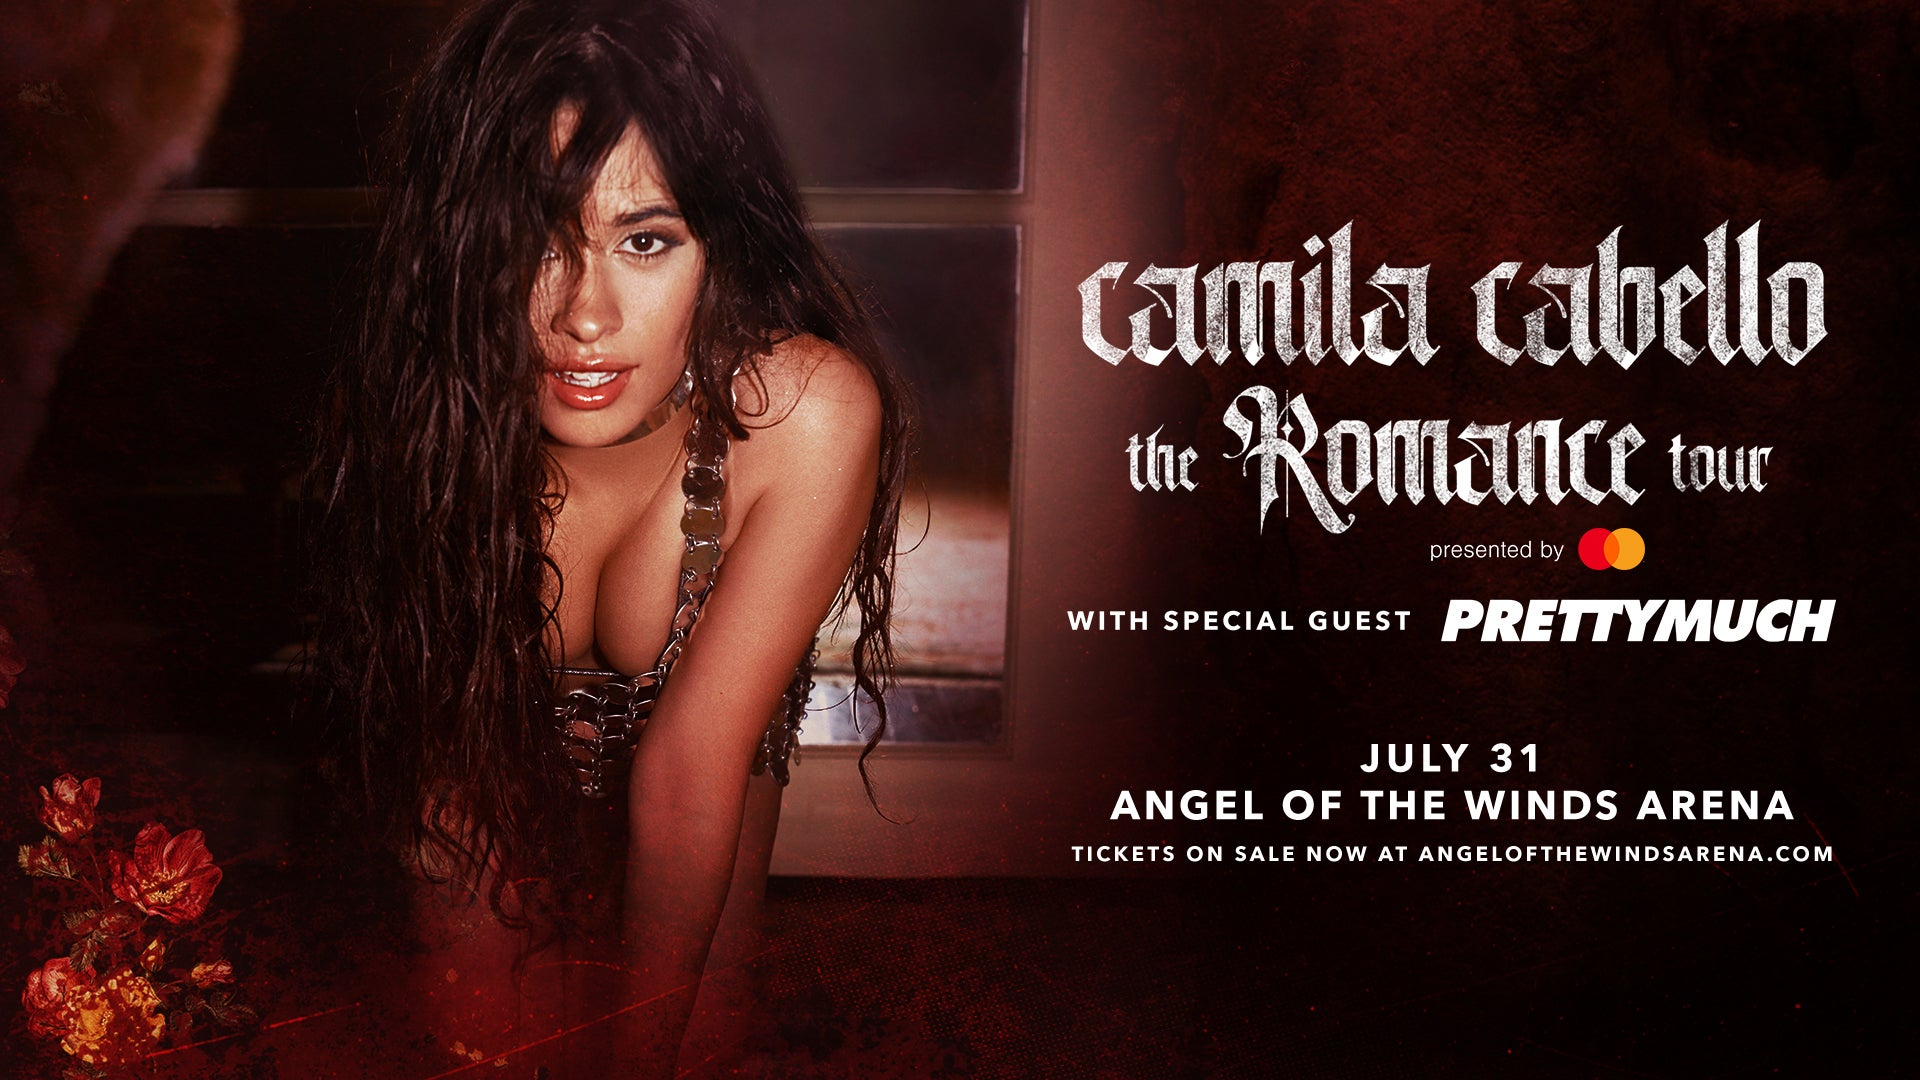 Camila Cabello: The Romance Tour presented by Mastercard - CANCELED